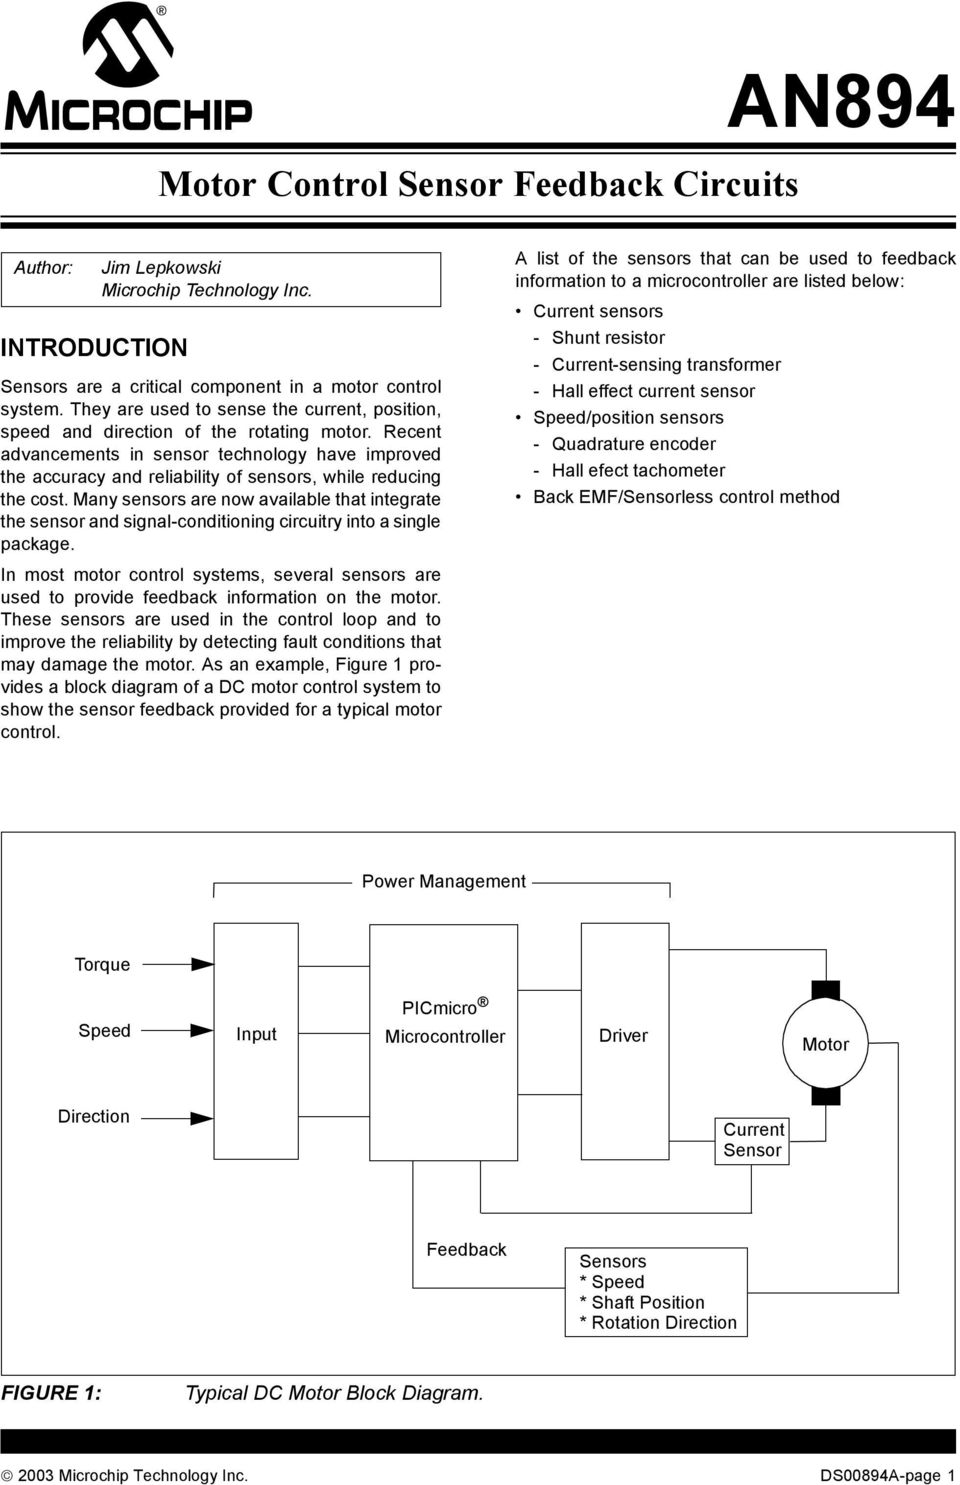 Motor Control Sensor Feedback Circuits Power Management Picmicro Currentsensorcircuit1jpg Recent Advancements In Technology Have Improved The Accuracy And Reliability Of Sensors While Reducing